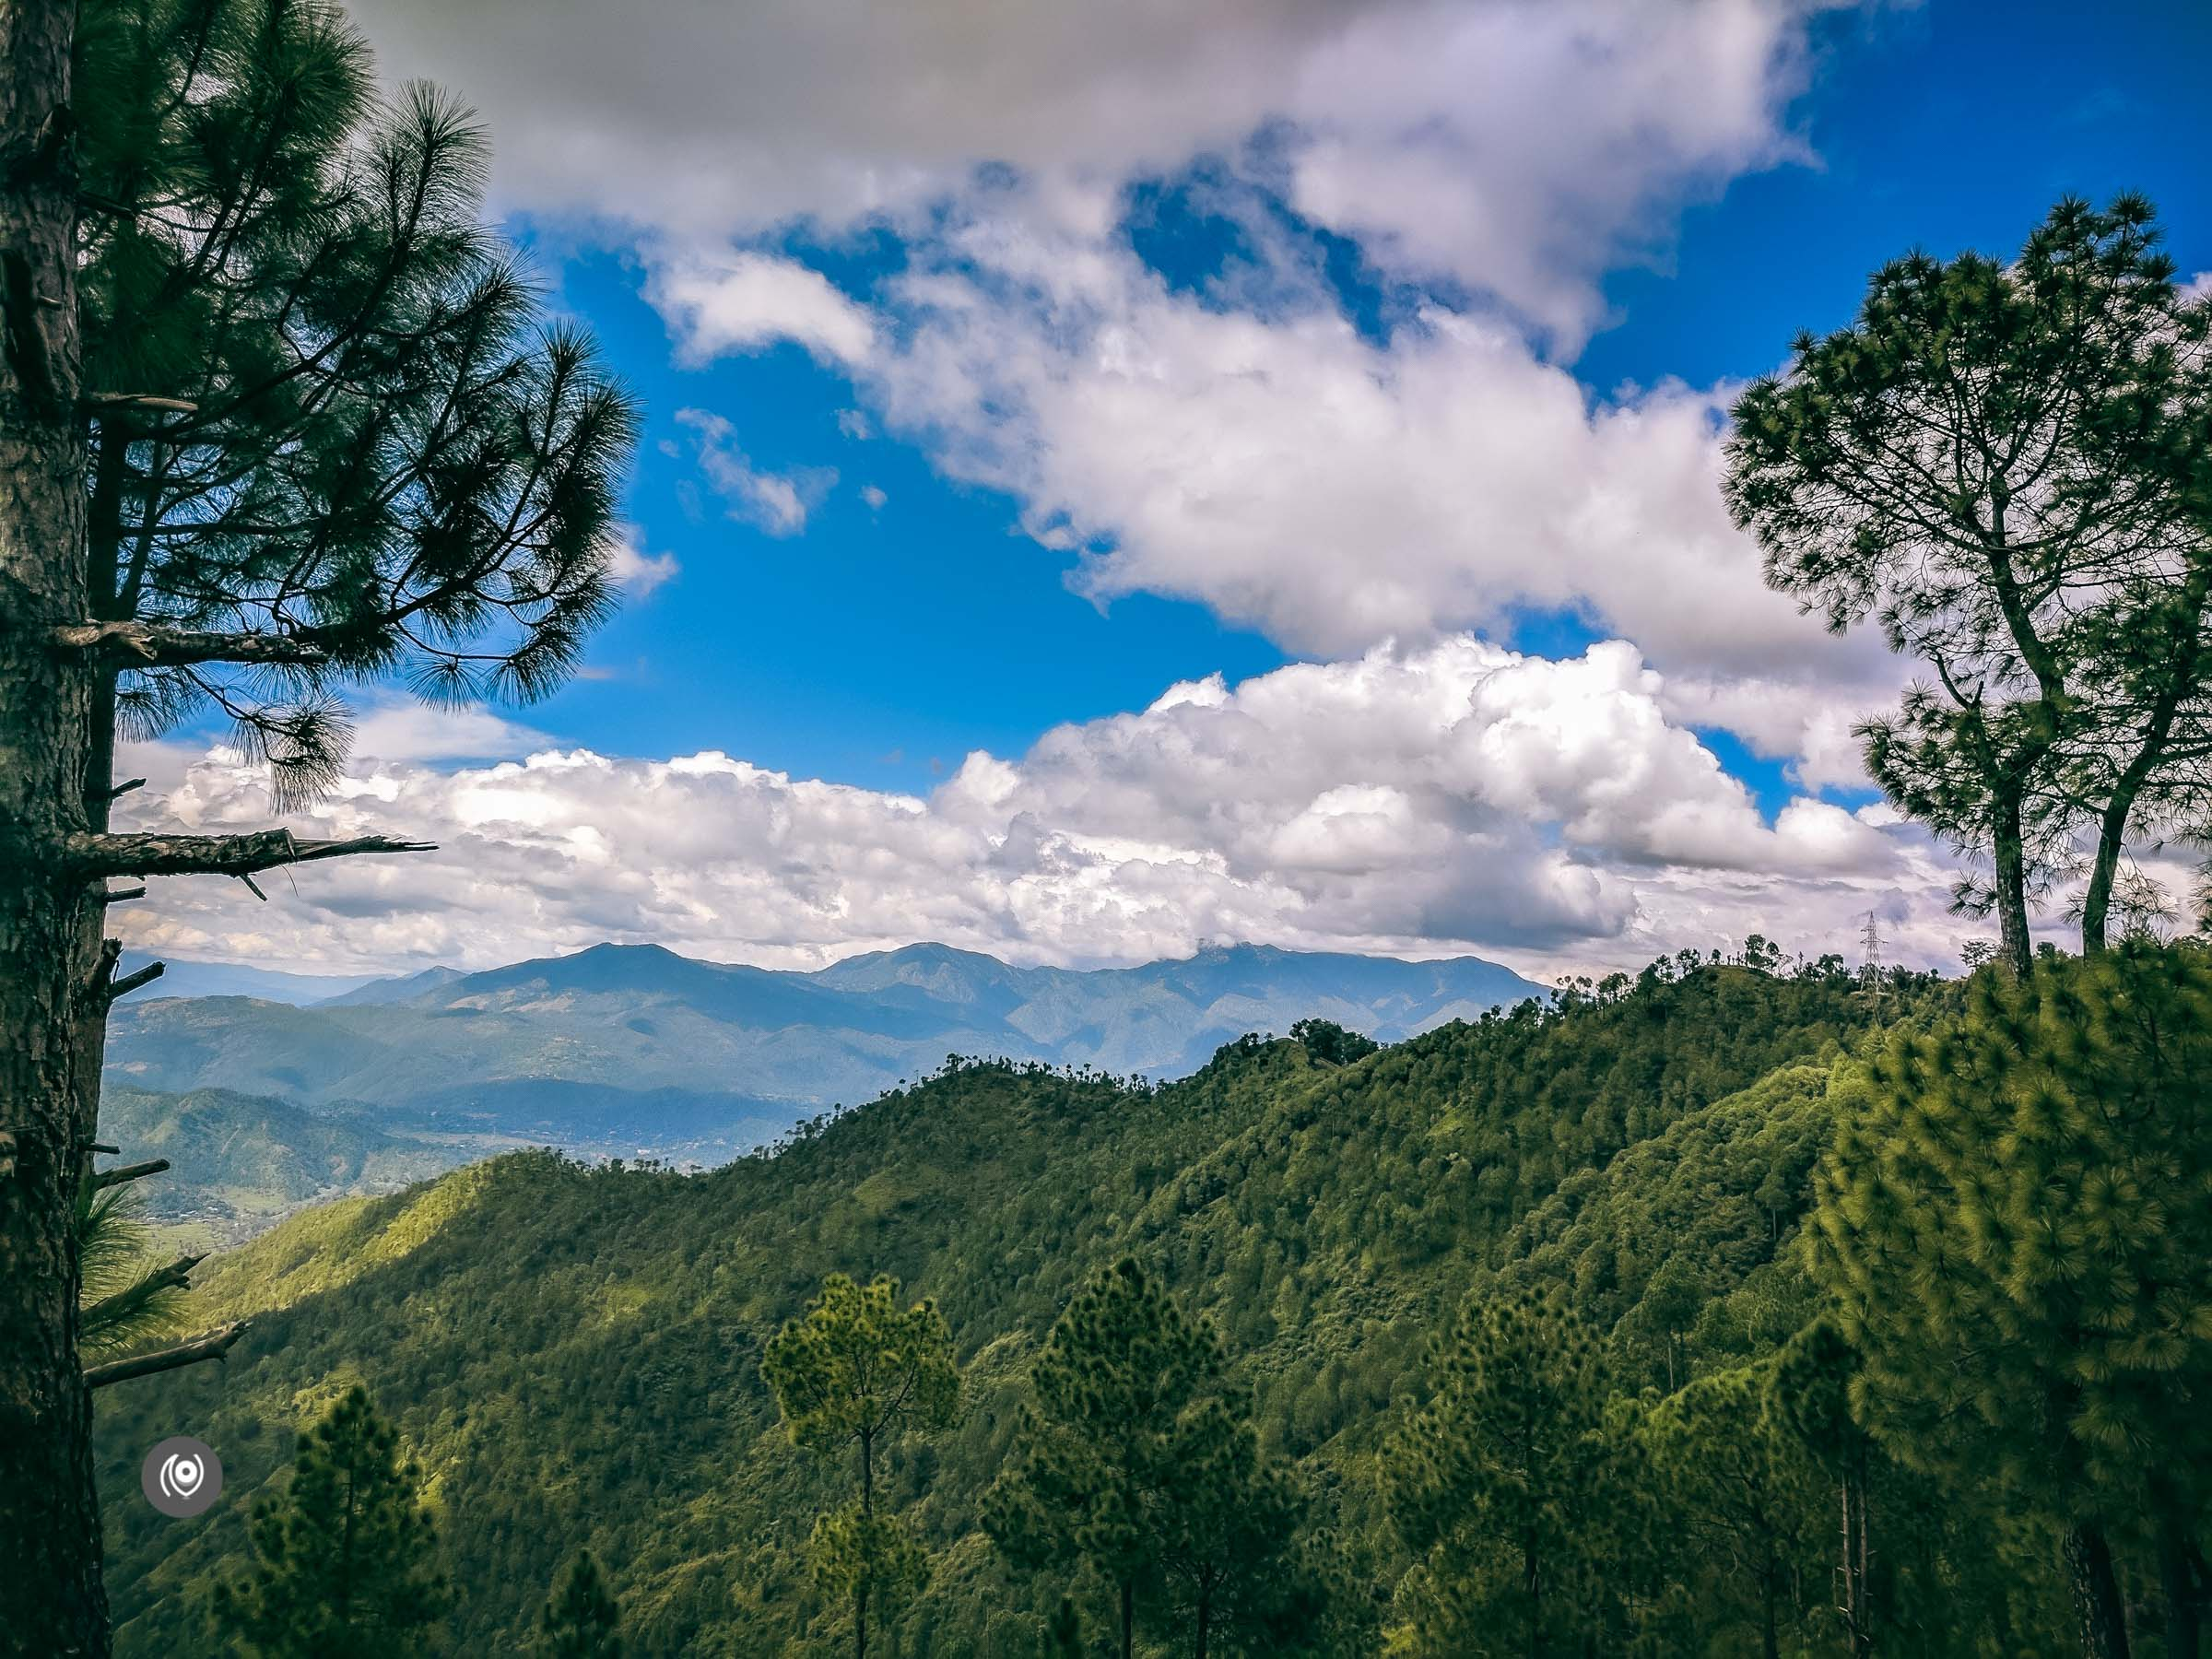 Ranikhet, Uttarakhand, EyesForDestinations, EyesForIndia, EyesForRanikhet, EyesForUttarakhand, NainaxRanikhet, Travel Photographer, Destination Photographer, Travel Photography, Destination Photography, Resort, Hospitality, Lifestyle, Travel Blogger, Lifestyle Blogger, Vacation, Road Trip, India, Professional Photographer, Luxury, Lifestyle, Blogger, Feature, Story, ValleyViewHomeStay, ValleyView HomeStay, Valley View HomeStay